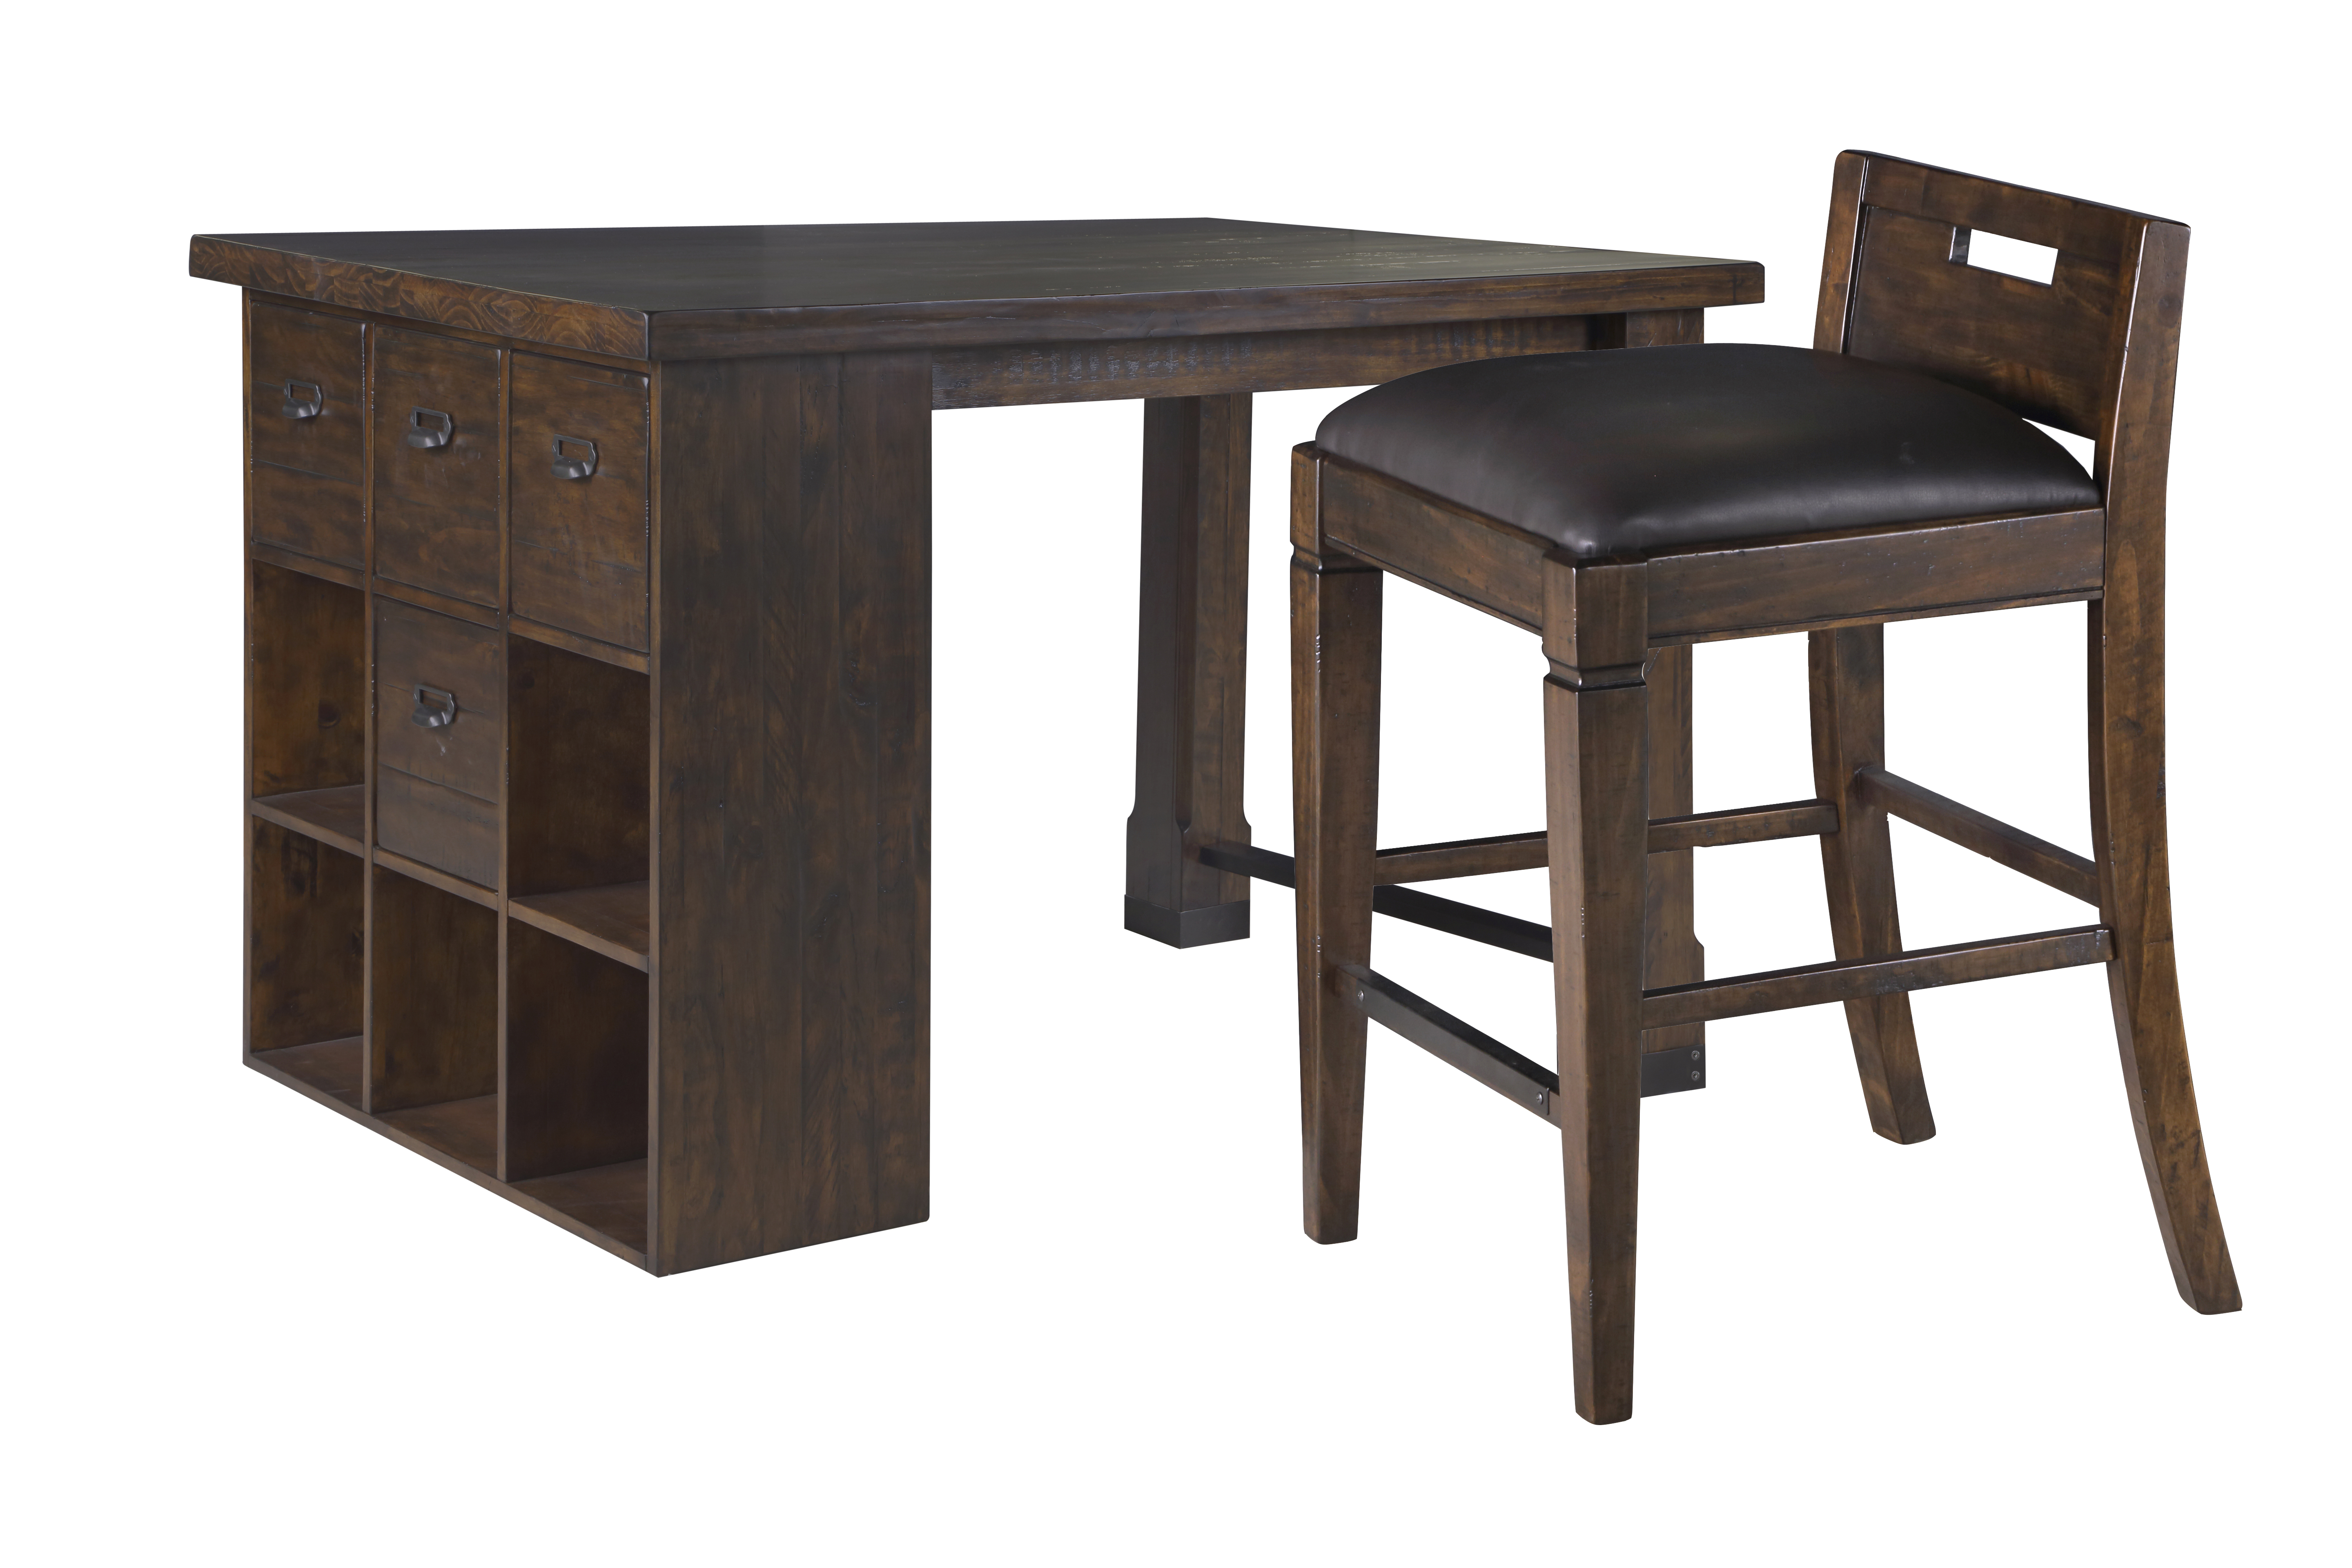 Pine Hill Transitional Pine Wood PU Counter Height Desk